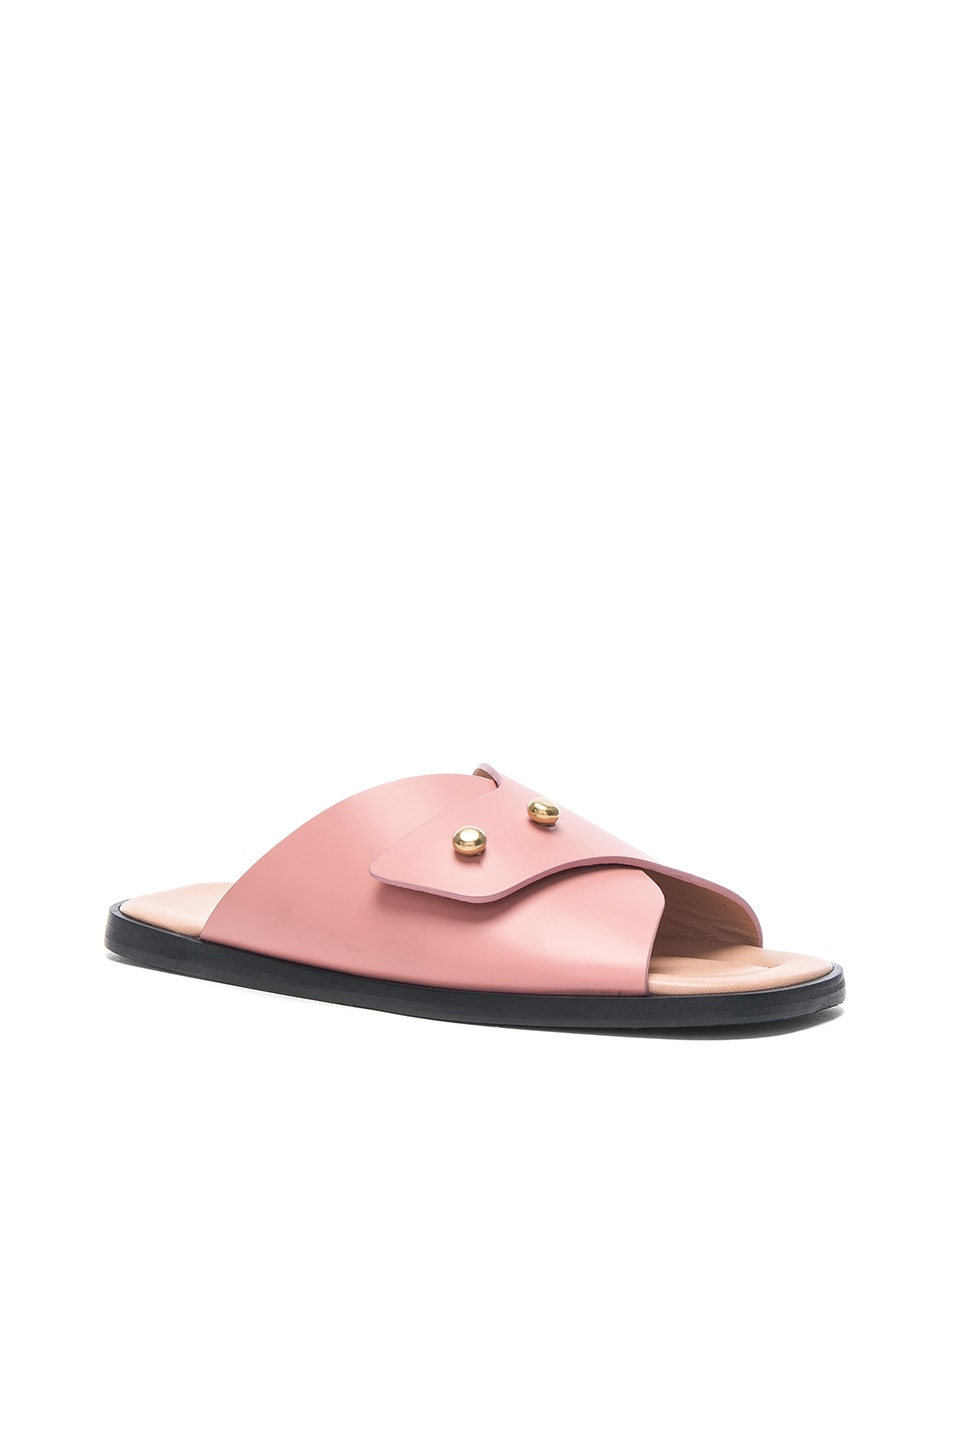 Acne Studios Pink Jilly Sandals 9AD53